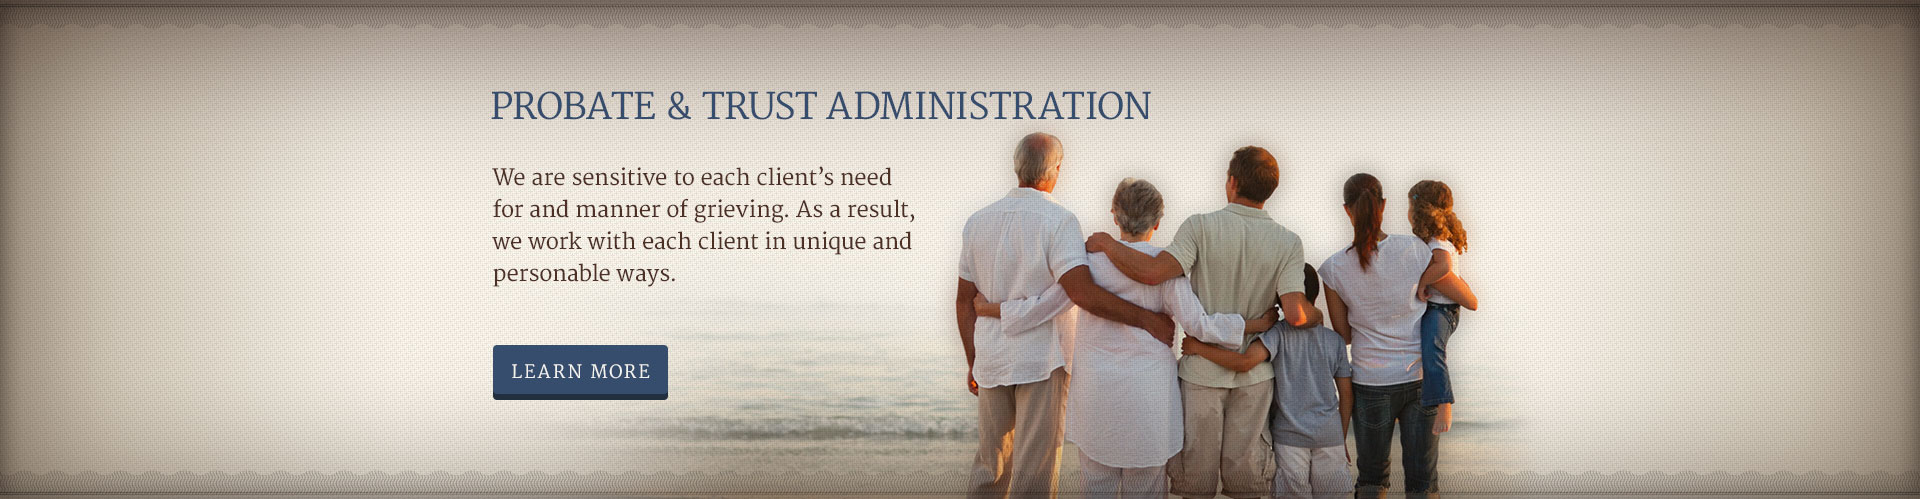 banner-probate-and-trust-administration